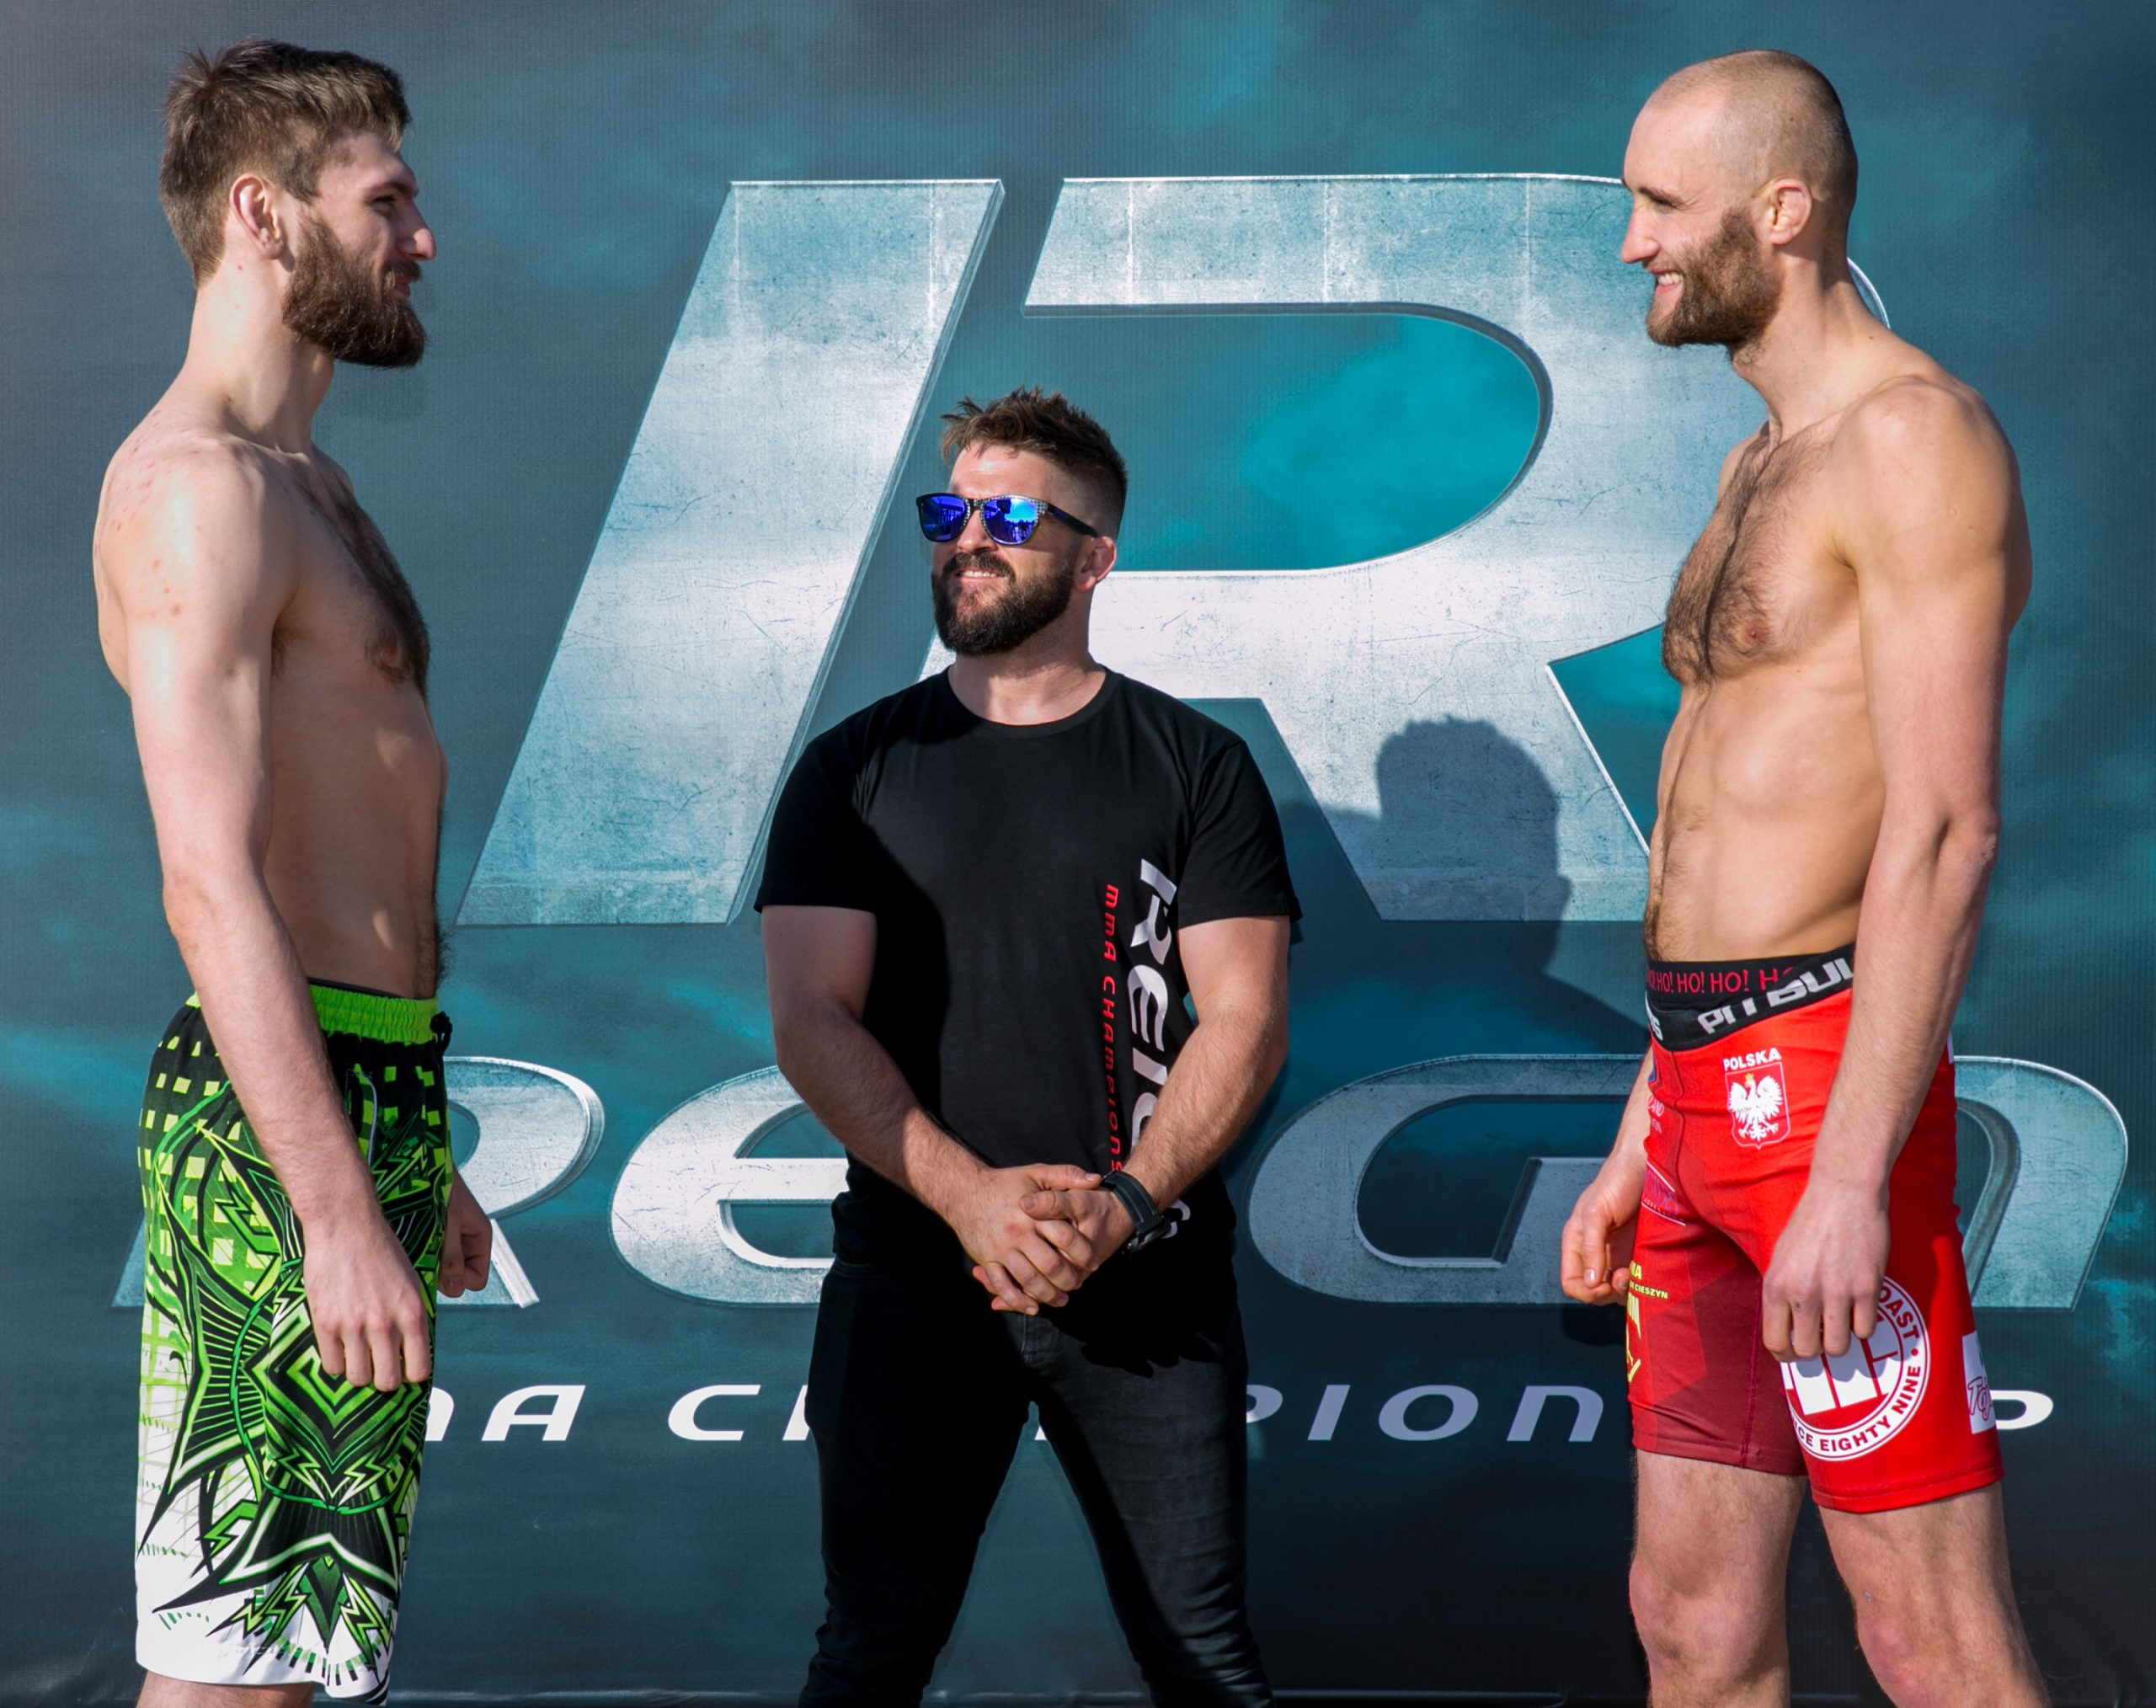 Promoter Karl Keller Talks Reign MMA & the Amateur Sport: What's Next?